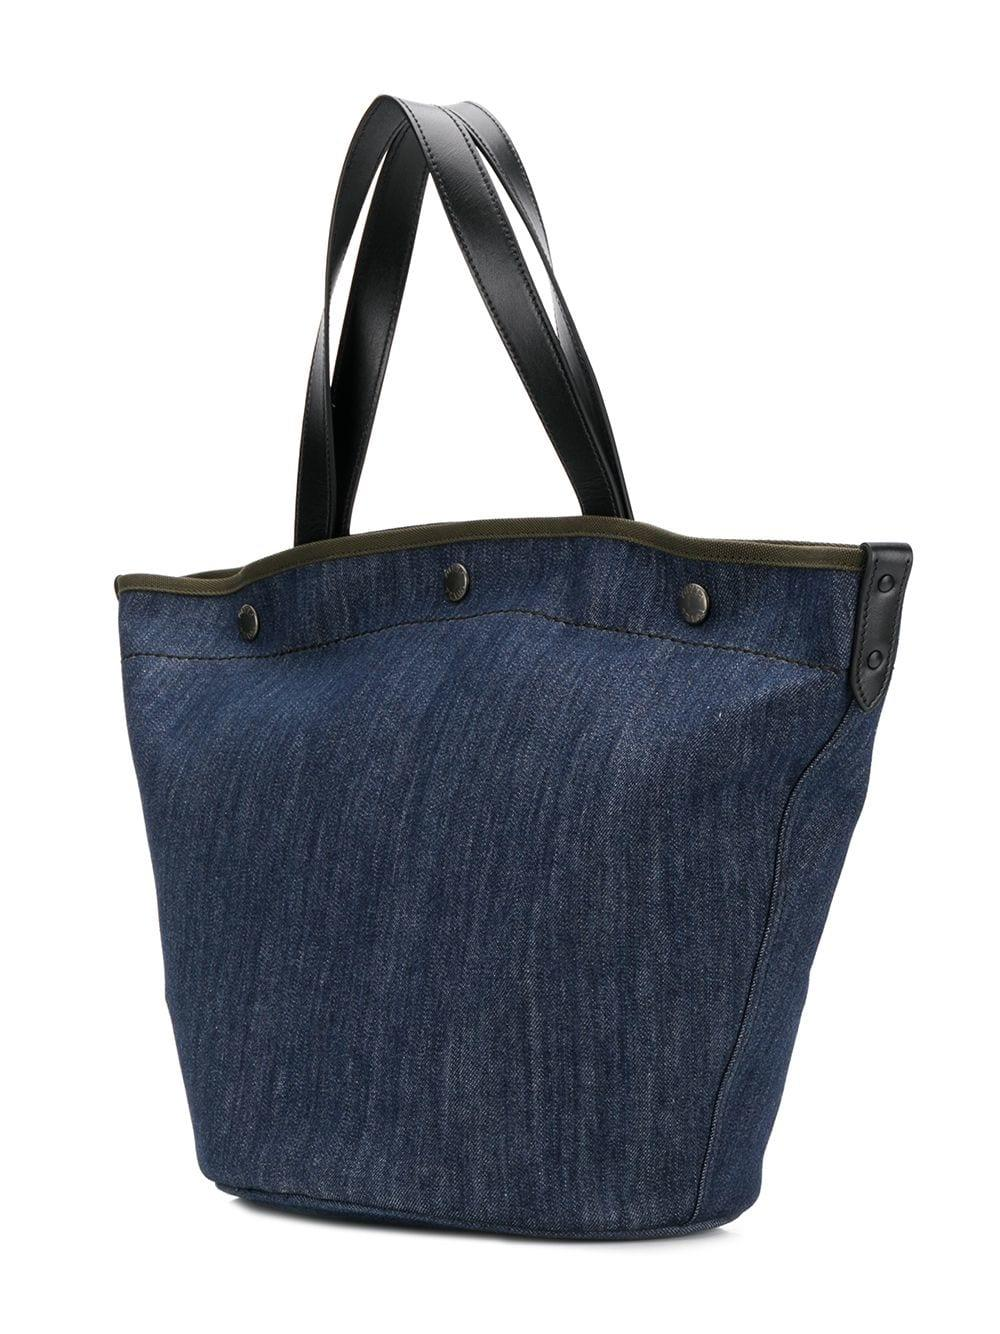 d629546f090f Prada - Blue Denim Shopping Tote - Lyst. View fullscreen